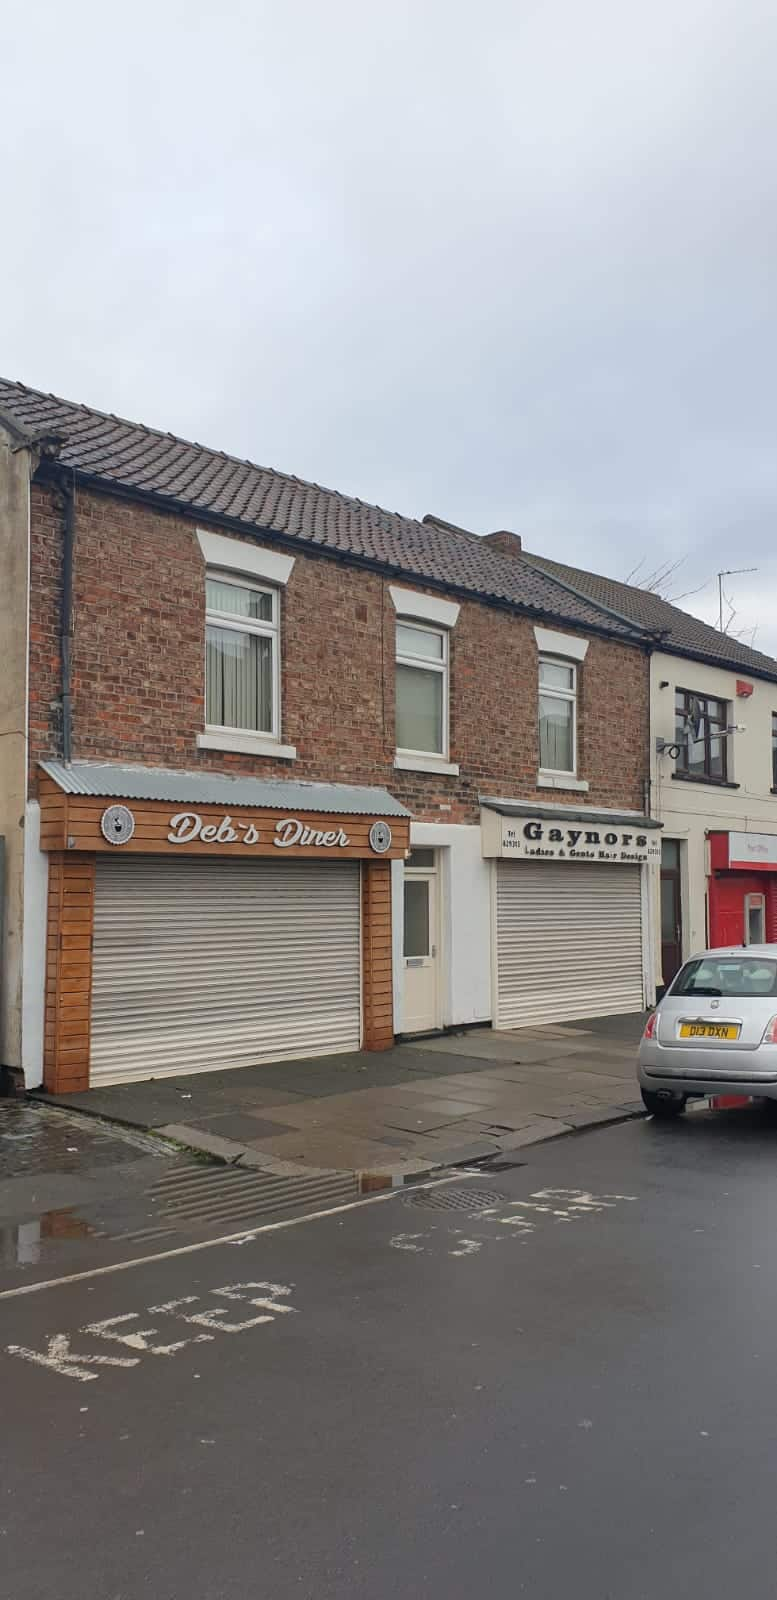 Chipchase Road, Middlesbrough